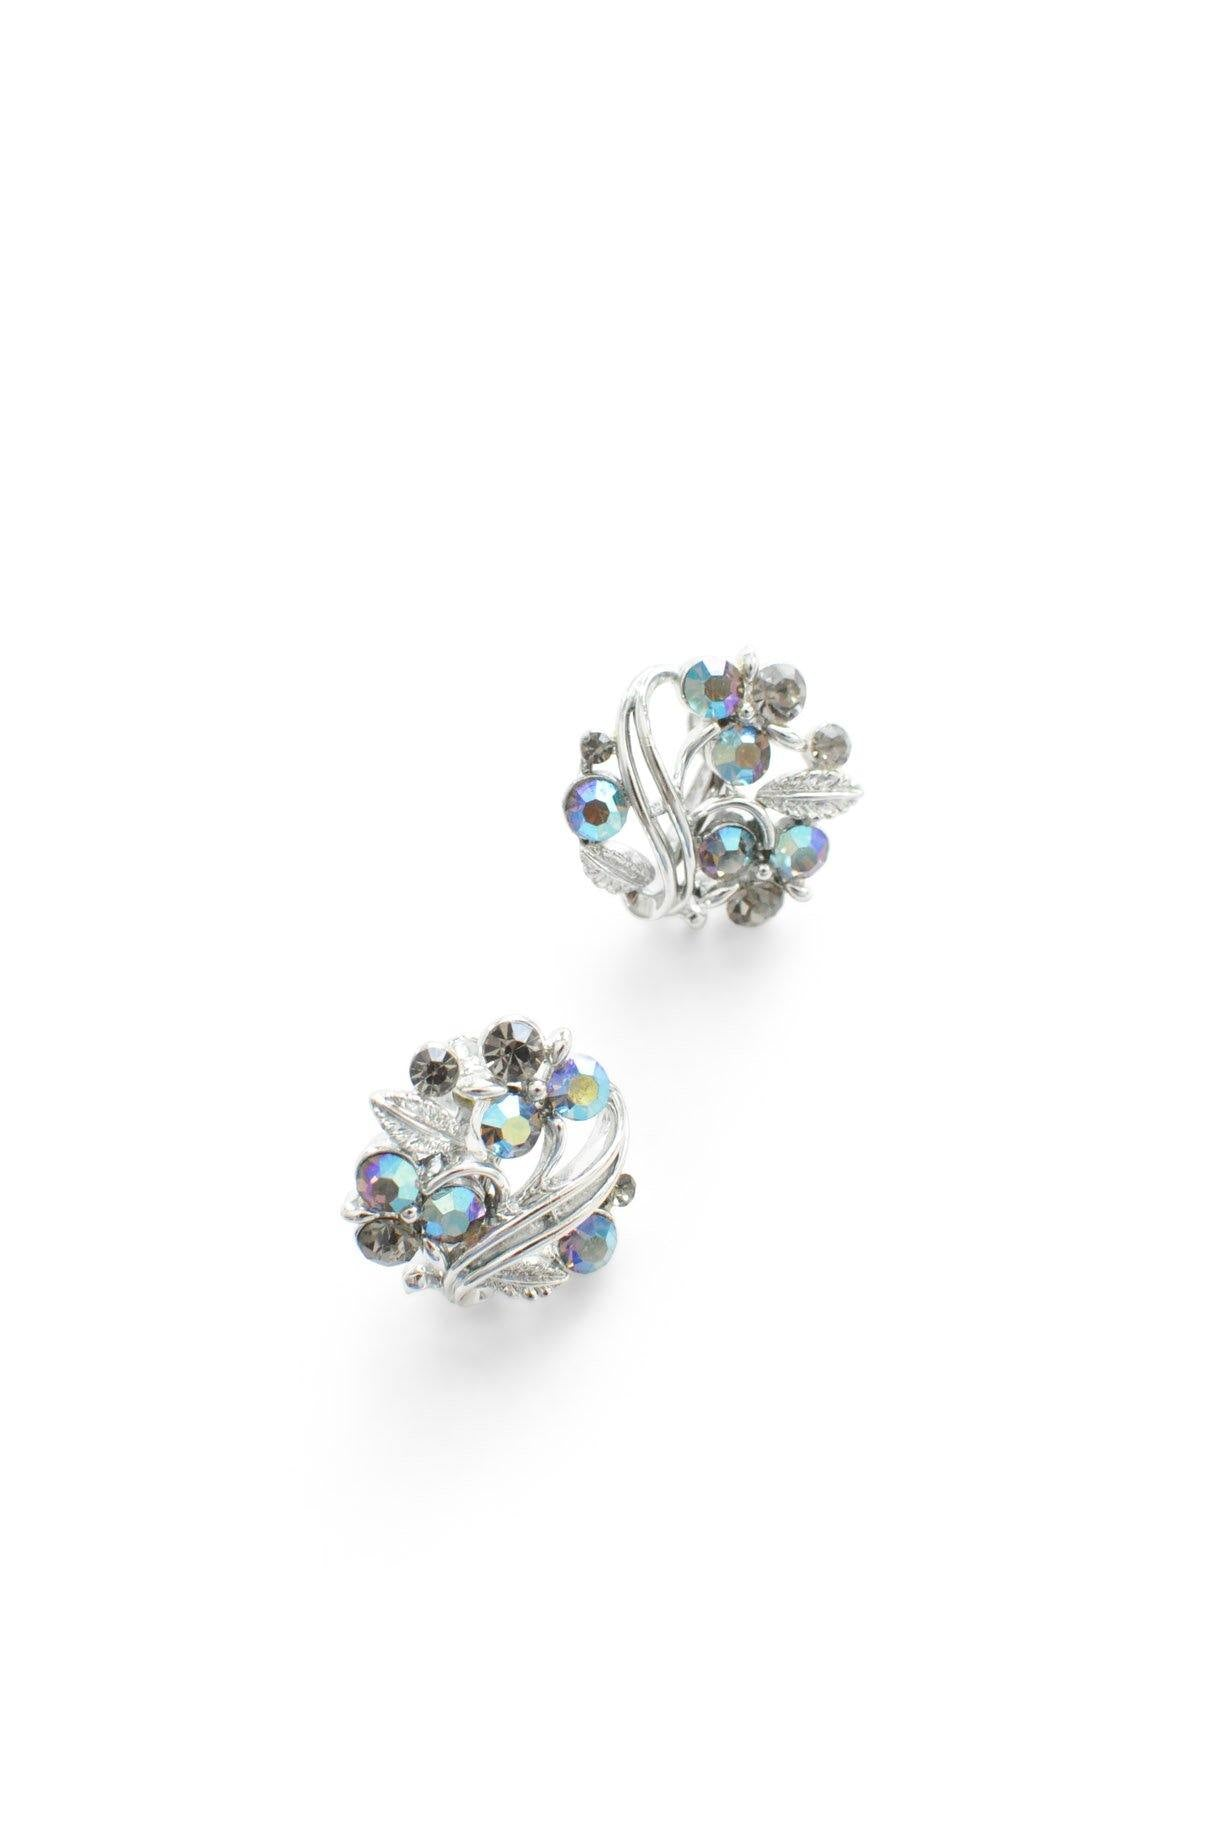 Rhinestone Cluster Clip-on Earrings From Sweet & Spark